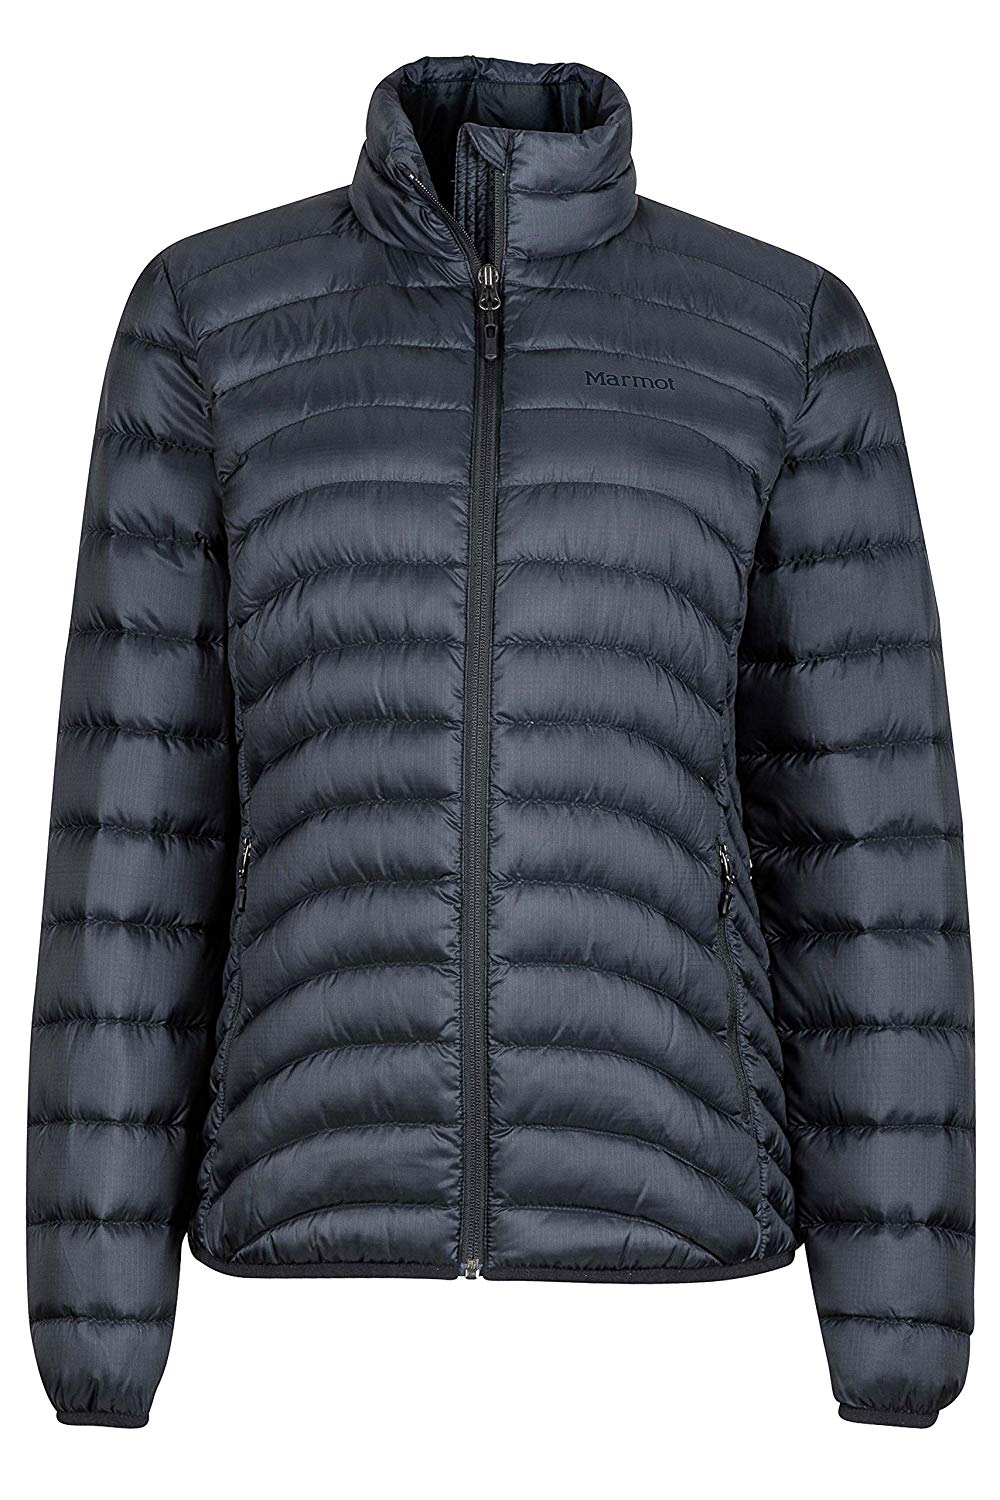 best down jackets for women - Marmot Aruna